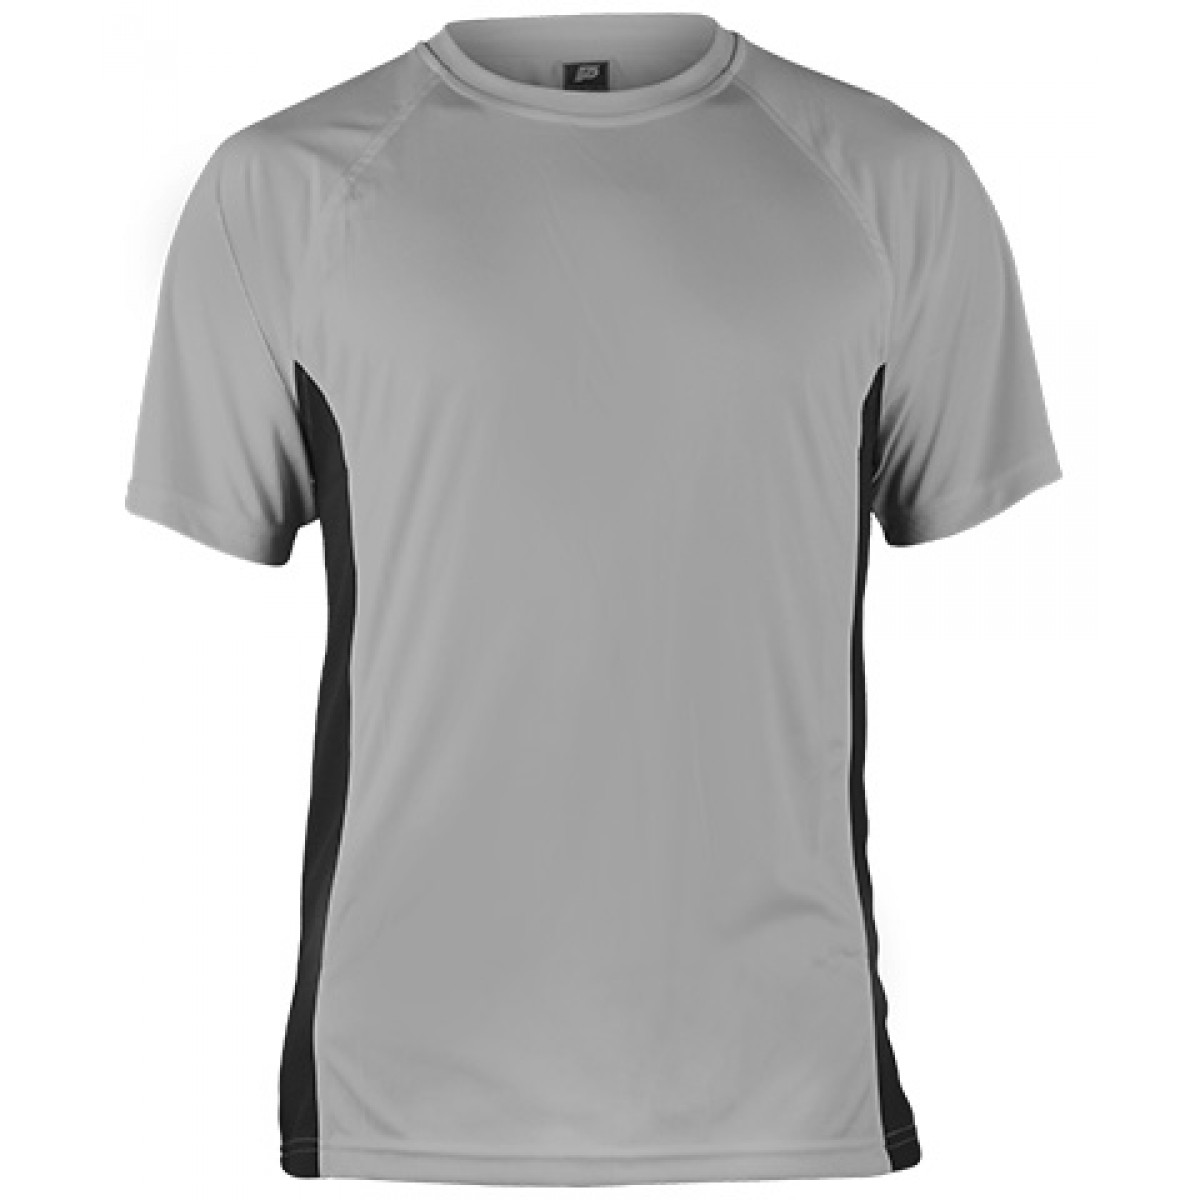 Short Sleeves Performance With Side Insert-Gray/Black-XL